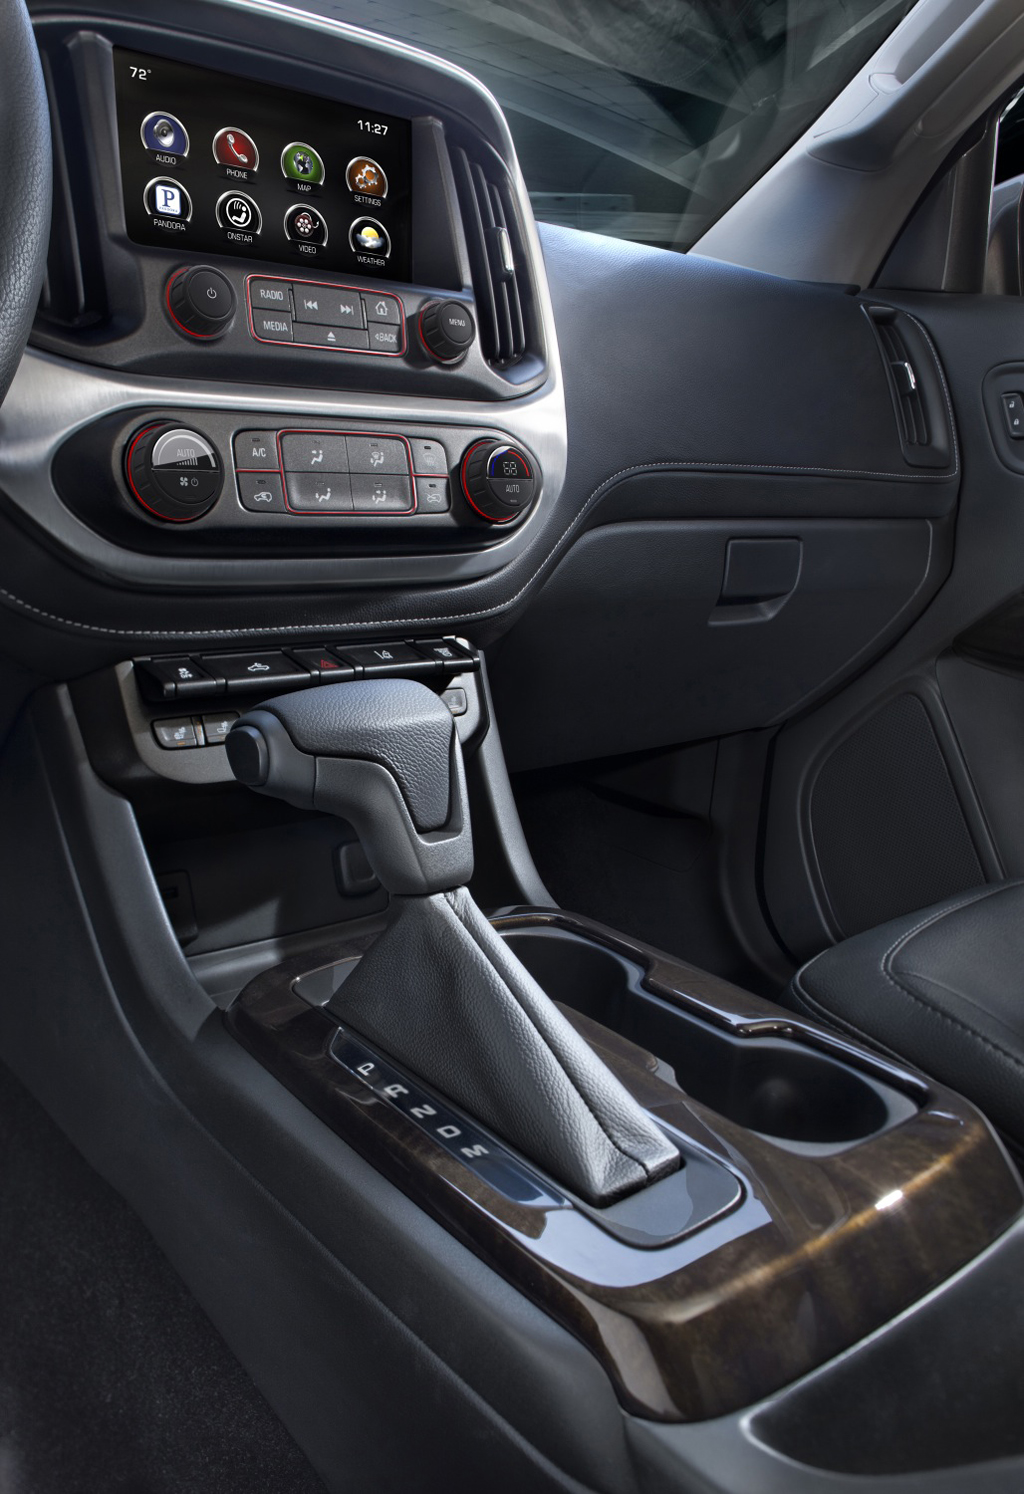 2015 GMC Canyon Interior 1 2015 GMC Canyon Unveiled!